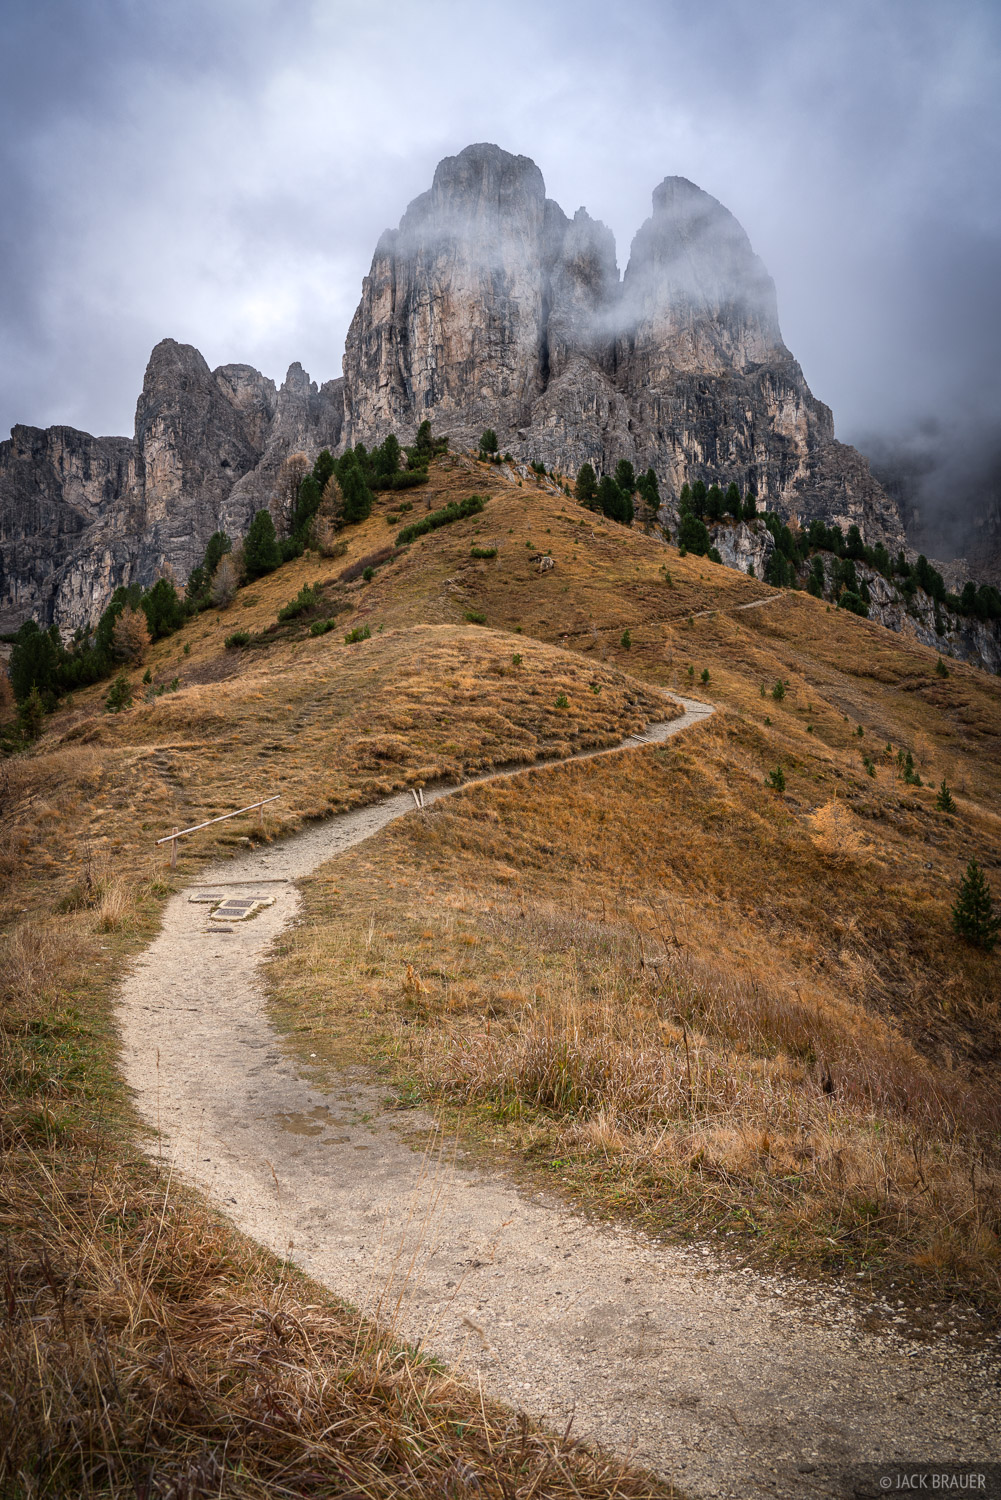 Dolomites, Gruppo del Sella, Italy, Passo Gardena, October, Alps, photo